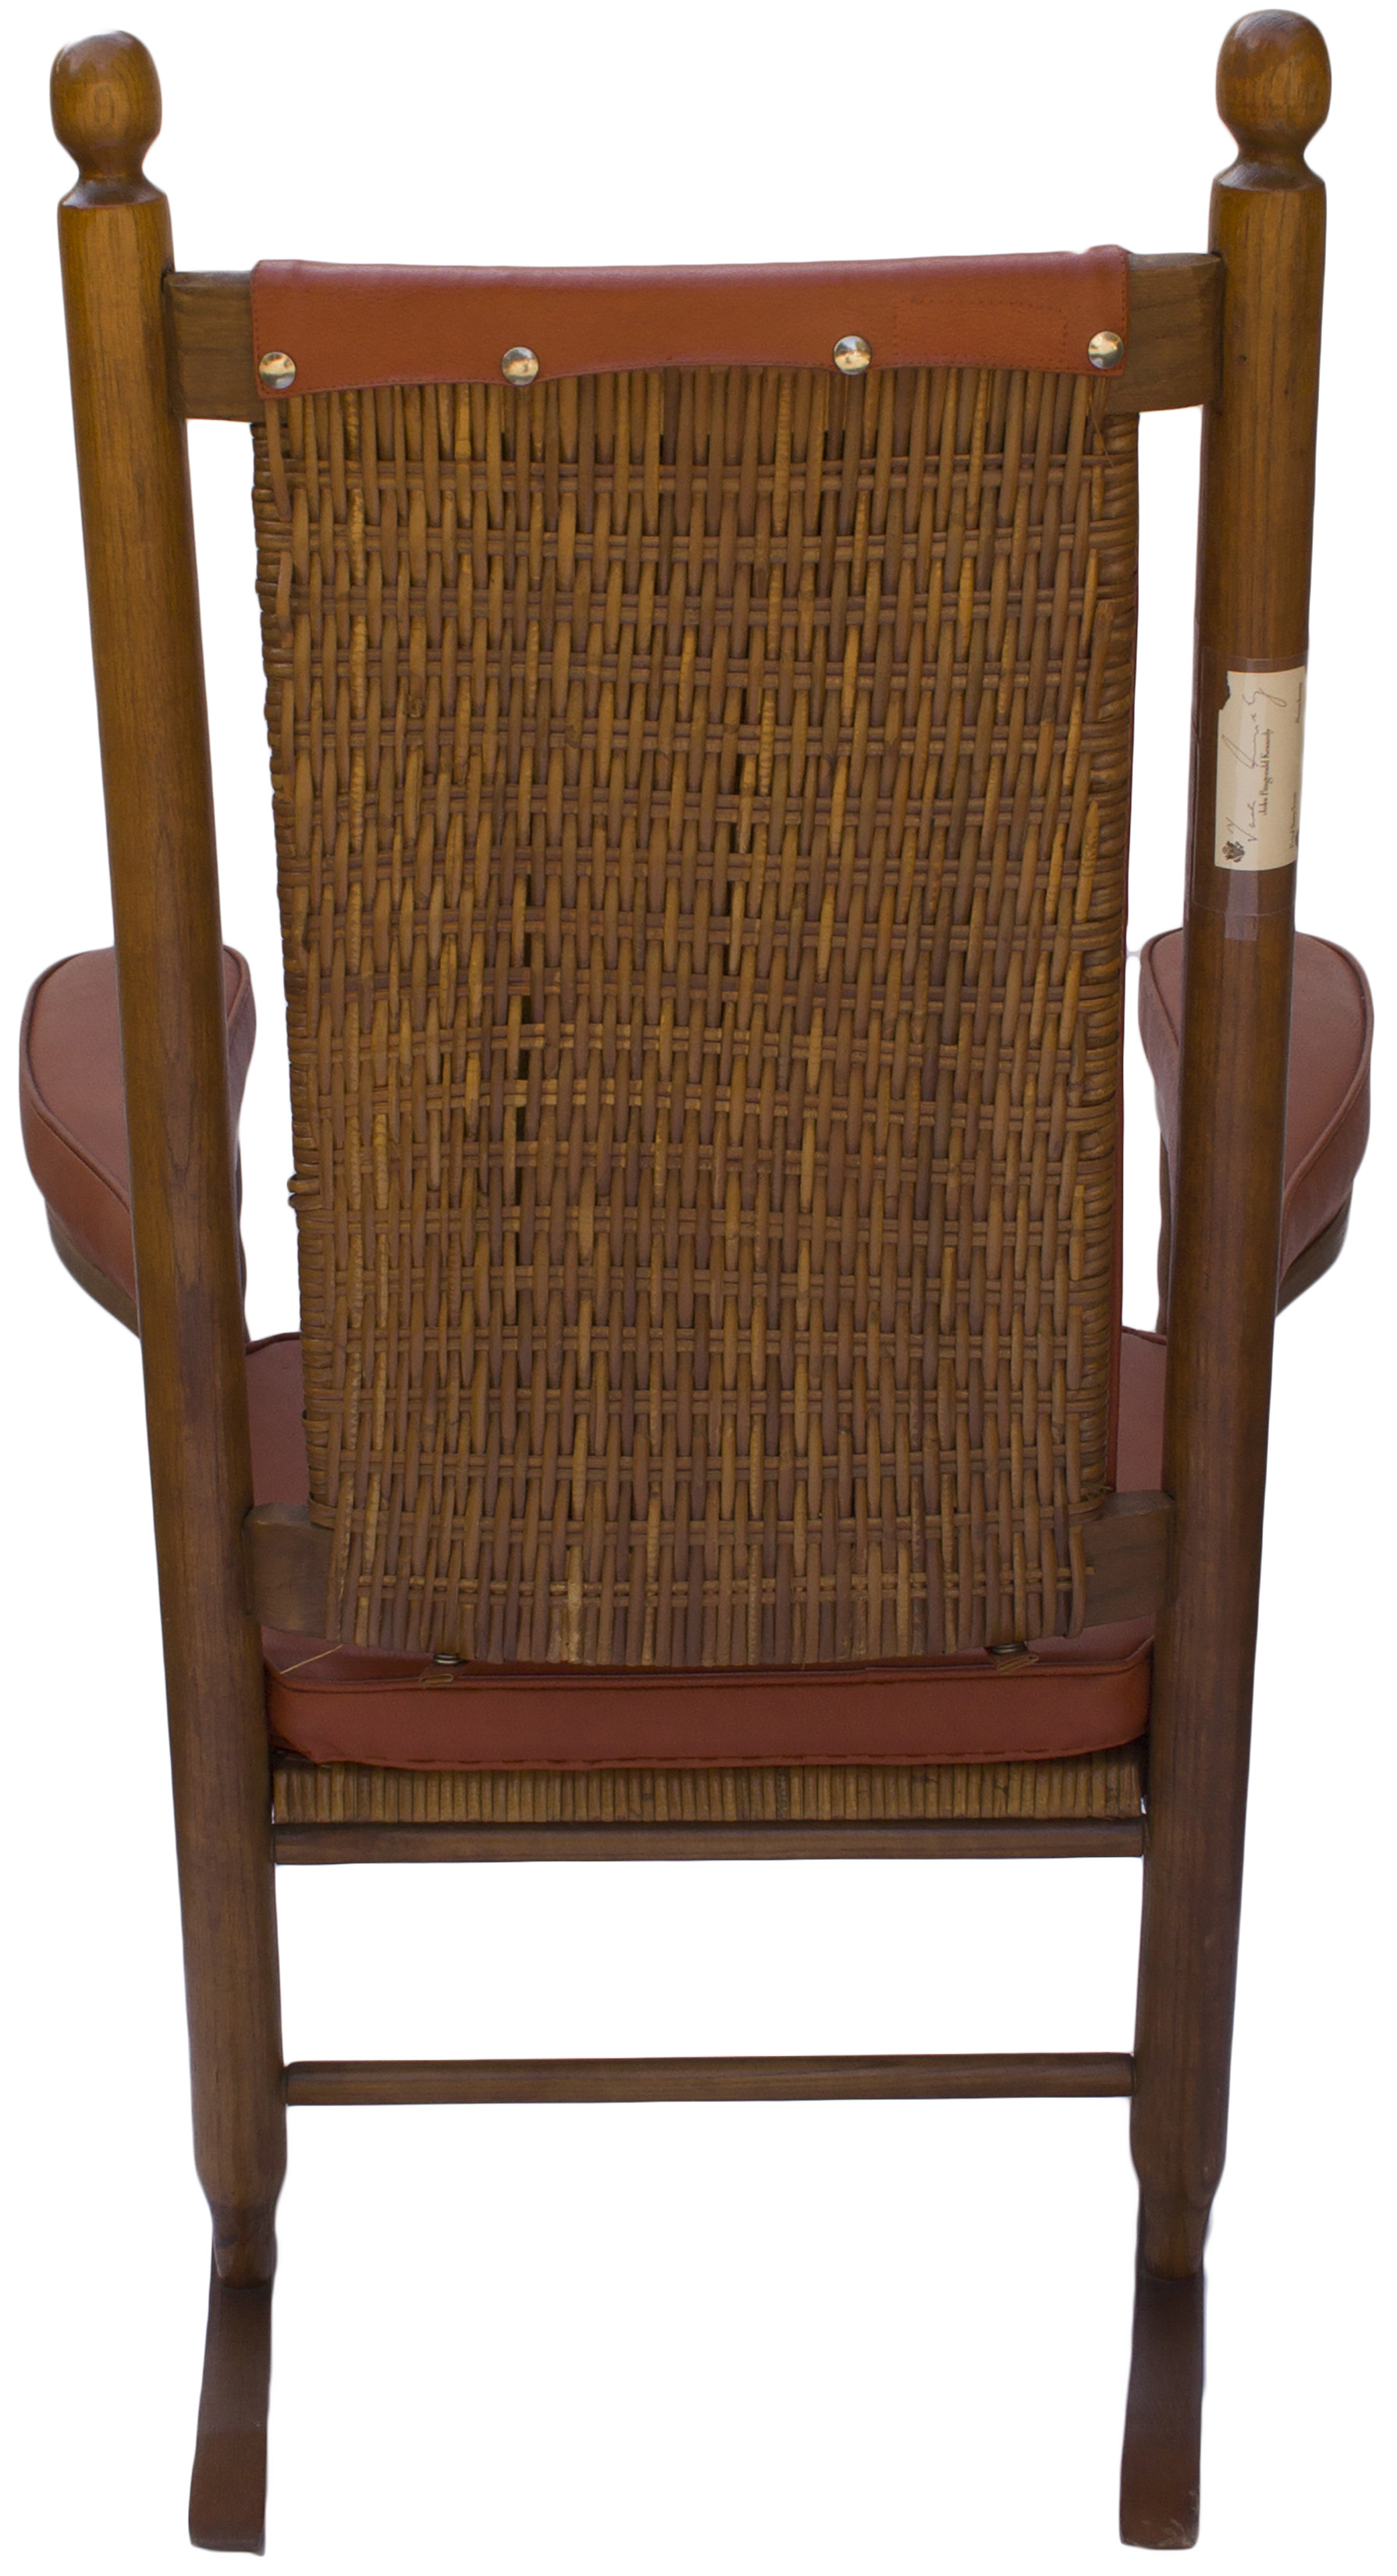 John F Kennedy S Rocking Chair Used By Jfk As President